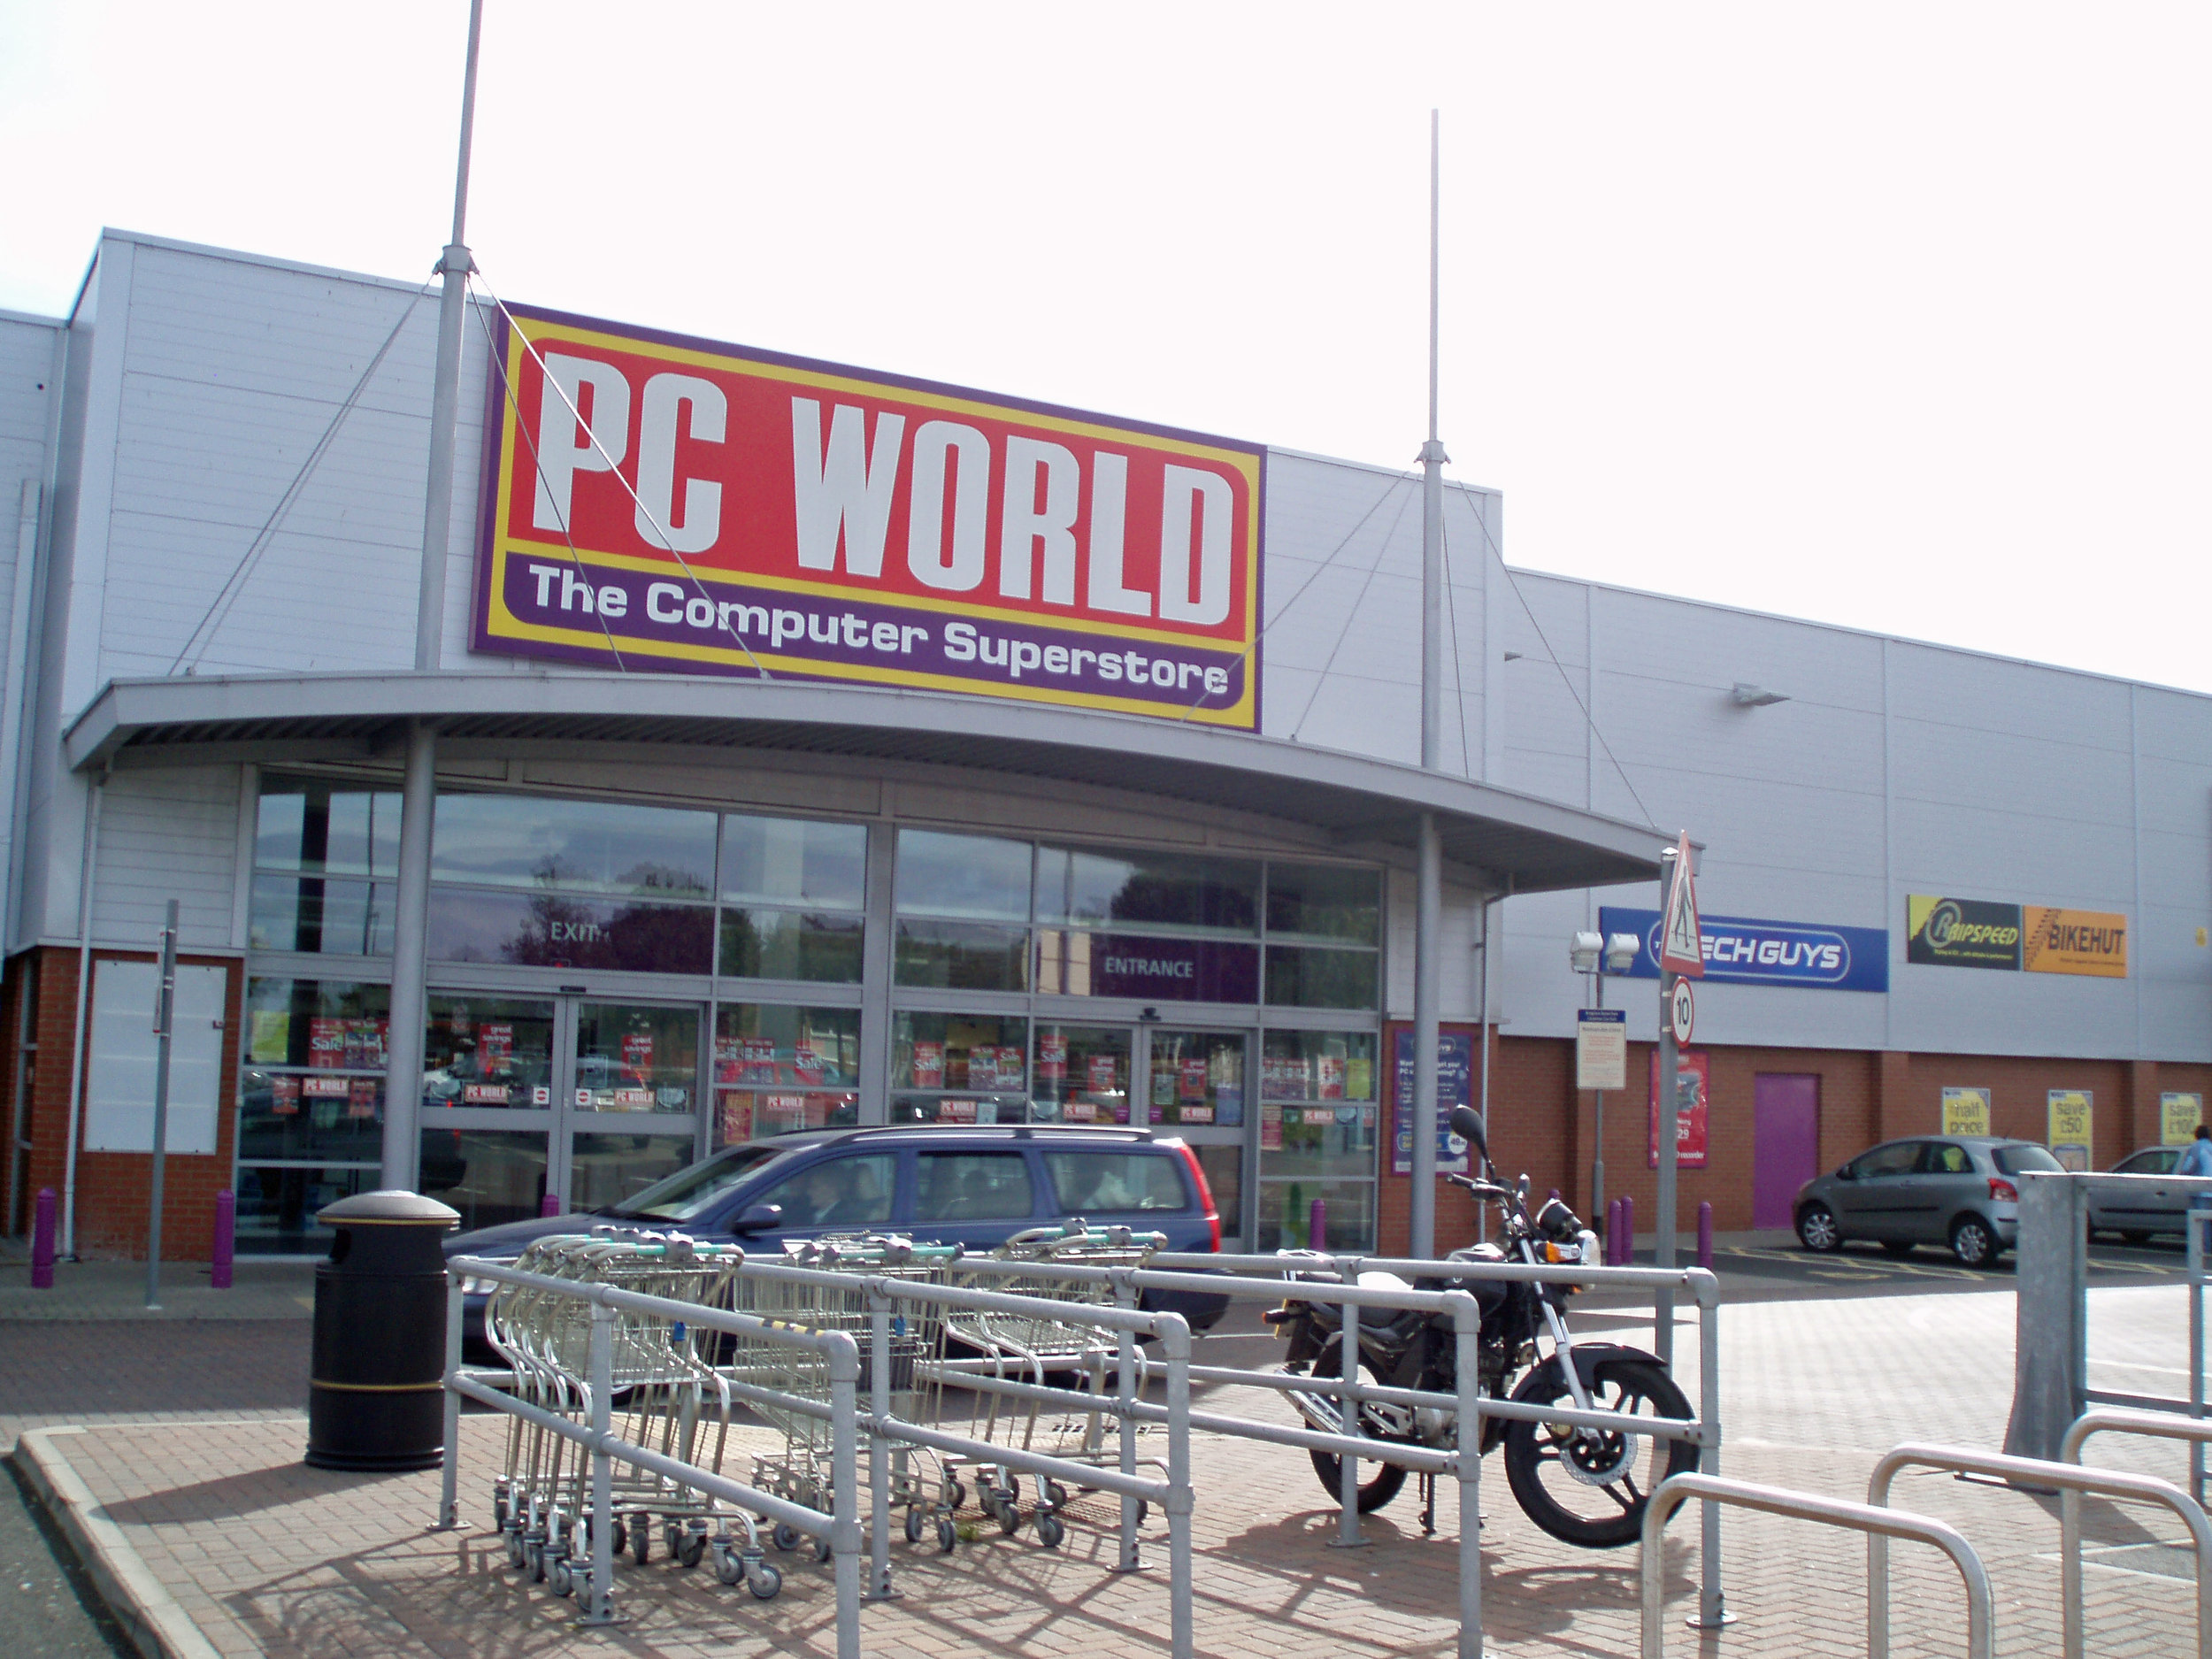 PC World - Sadly it's not political correctness that they sell